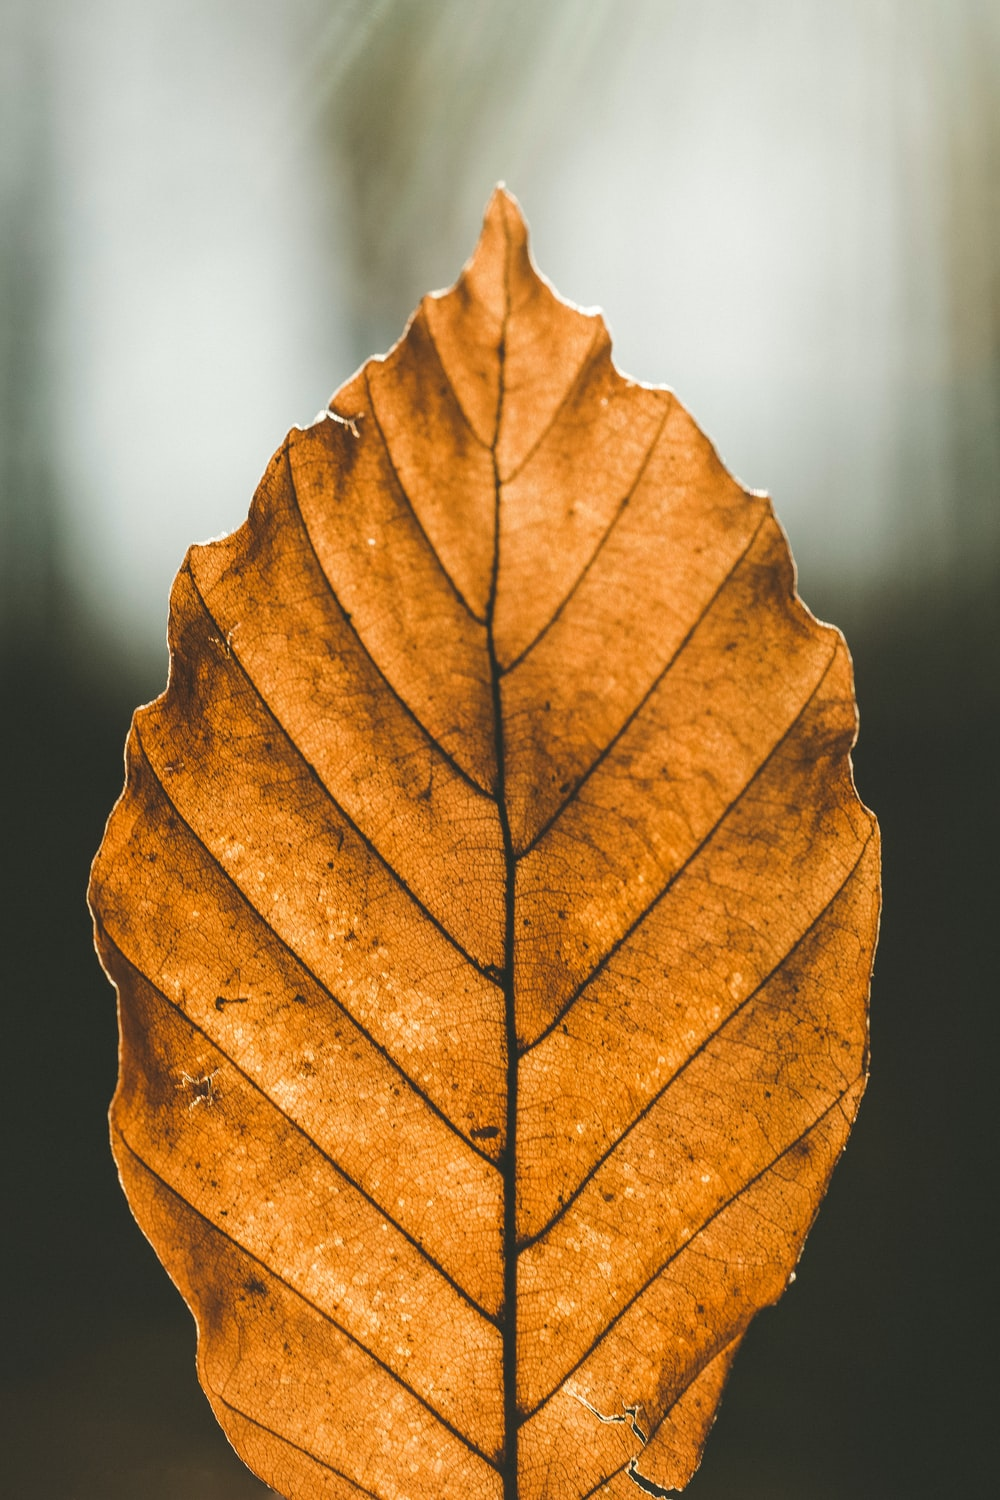 closeup photo of brown leaf